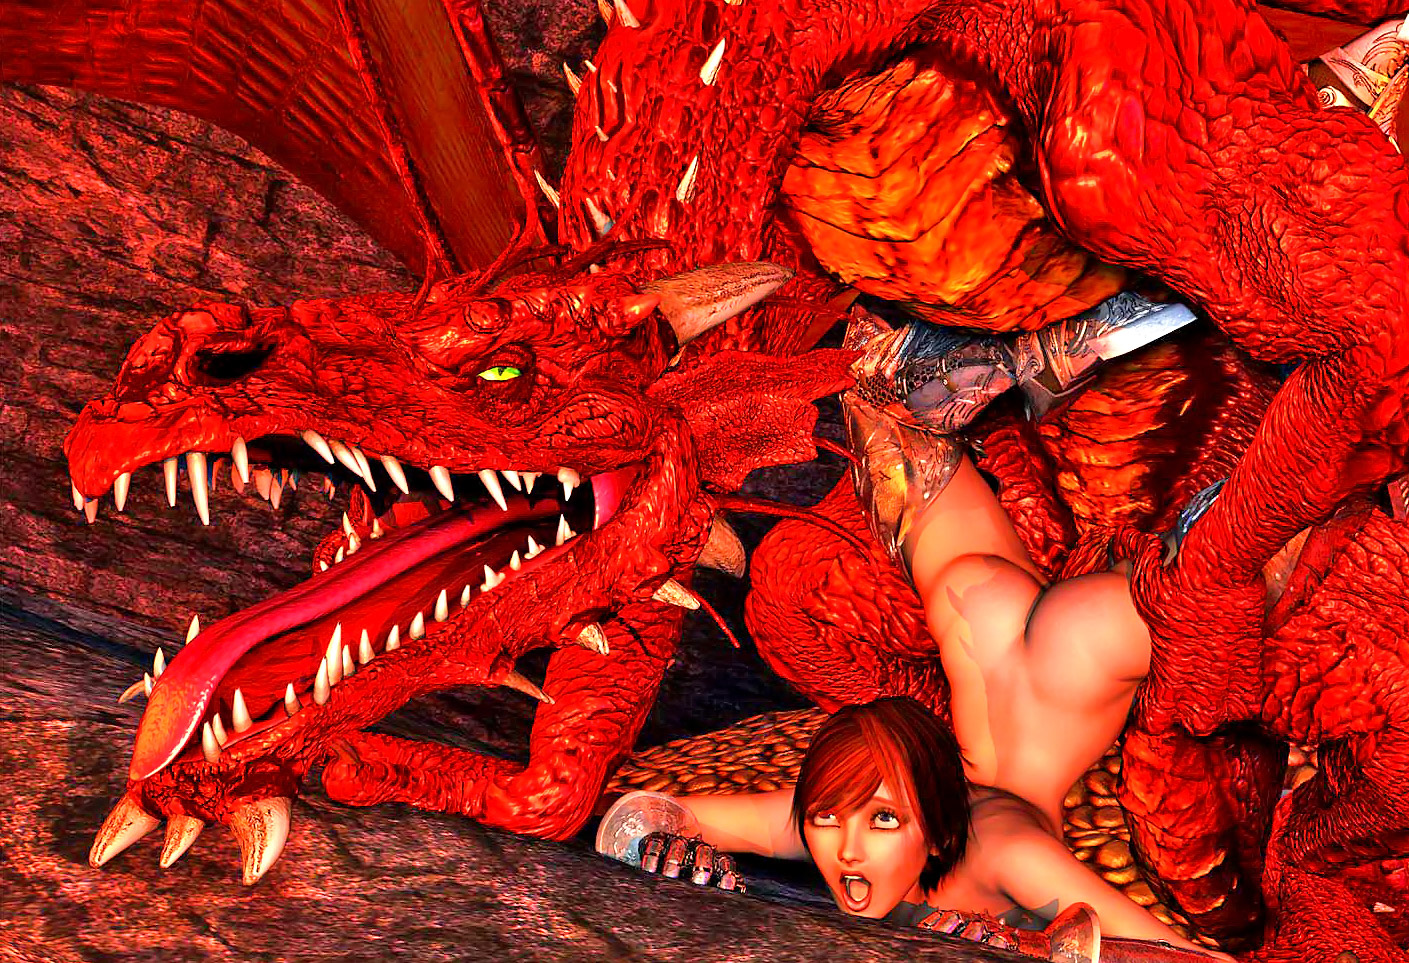 Human woman fucked by dragon video hentai photos